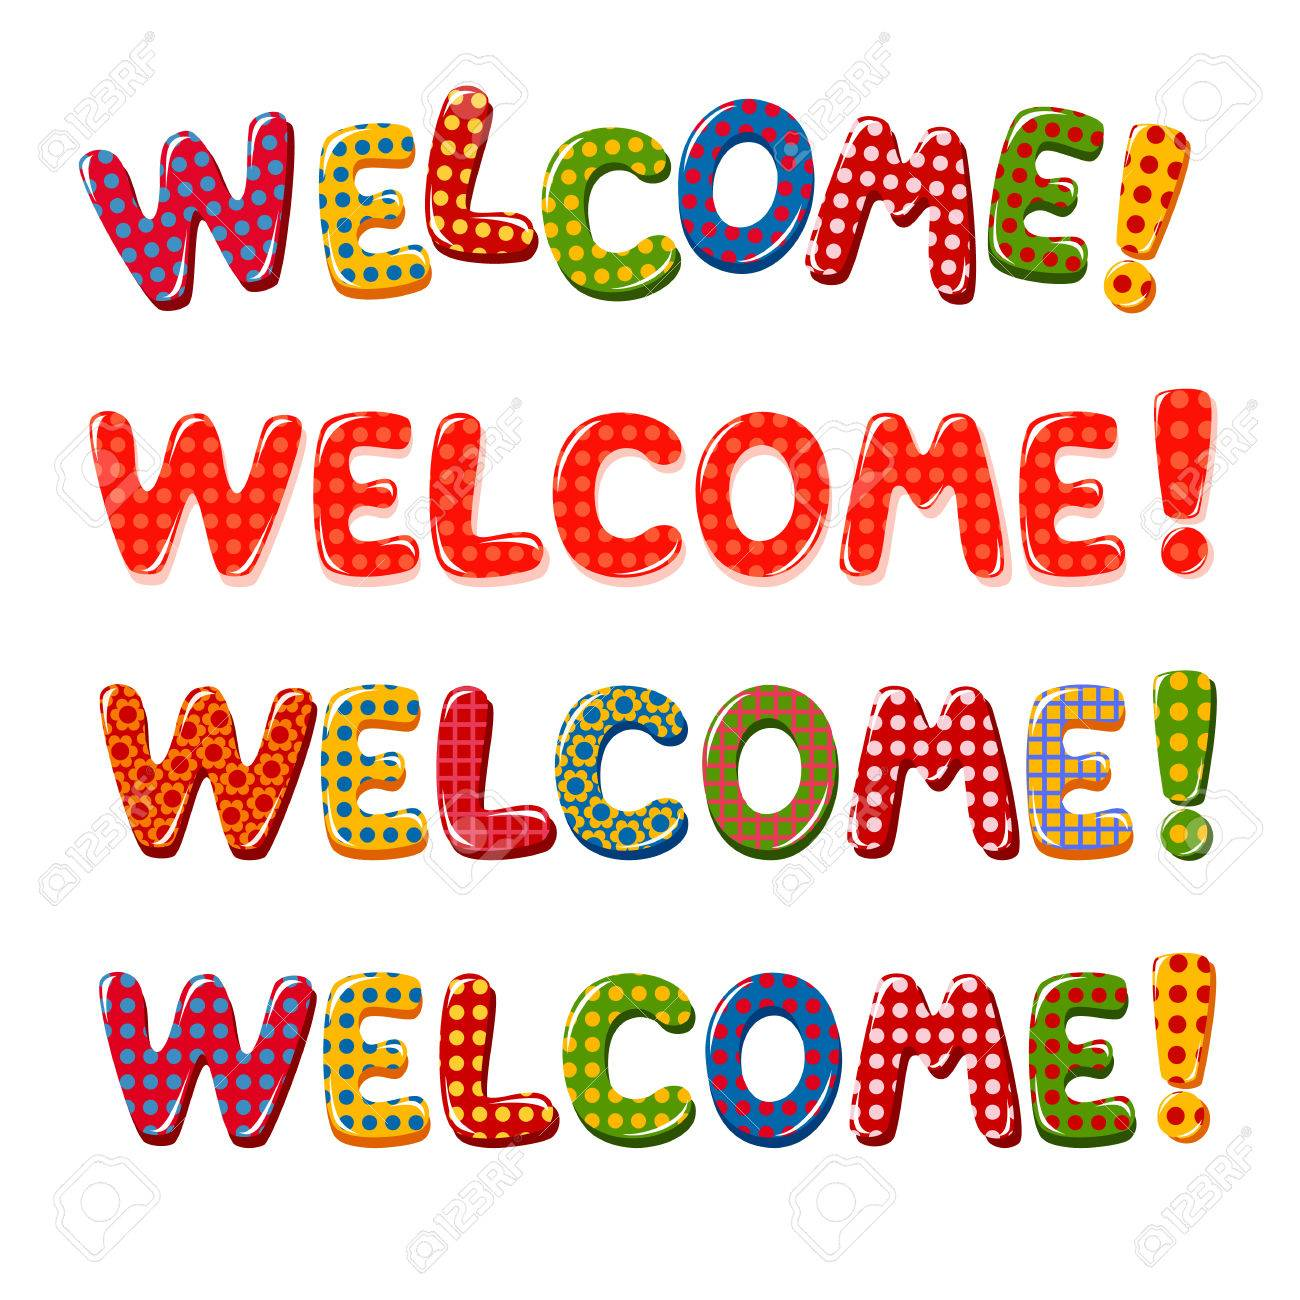 Welcome Home Text With Colorful Design Elements Royalty Free ...